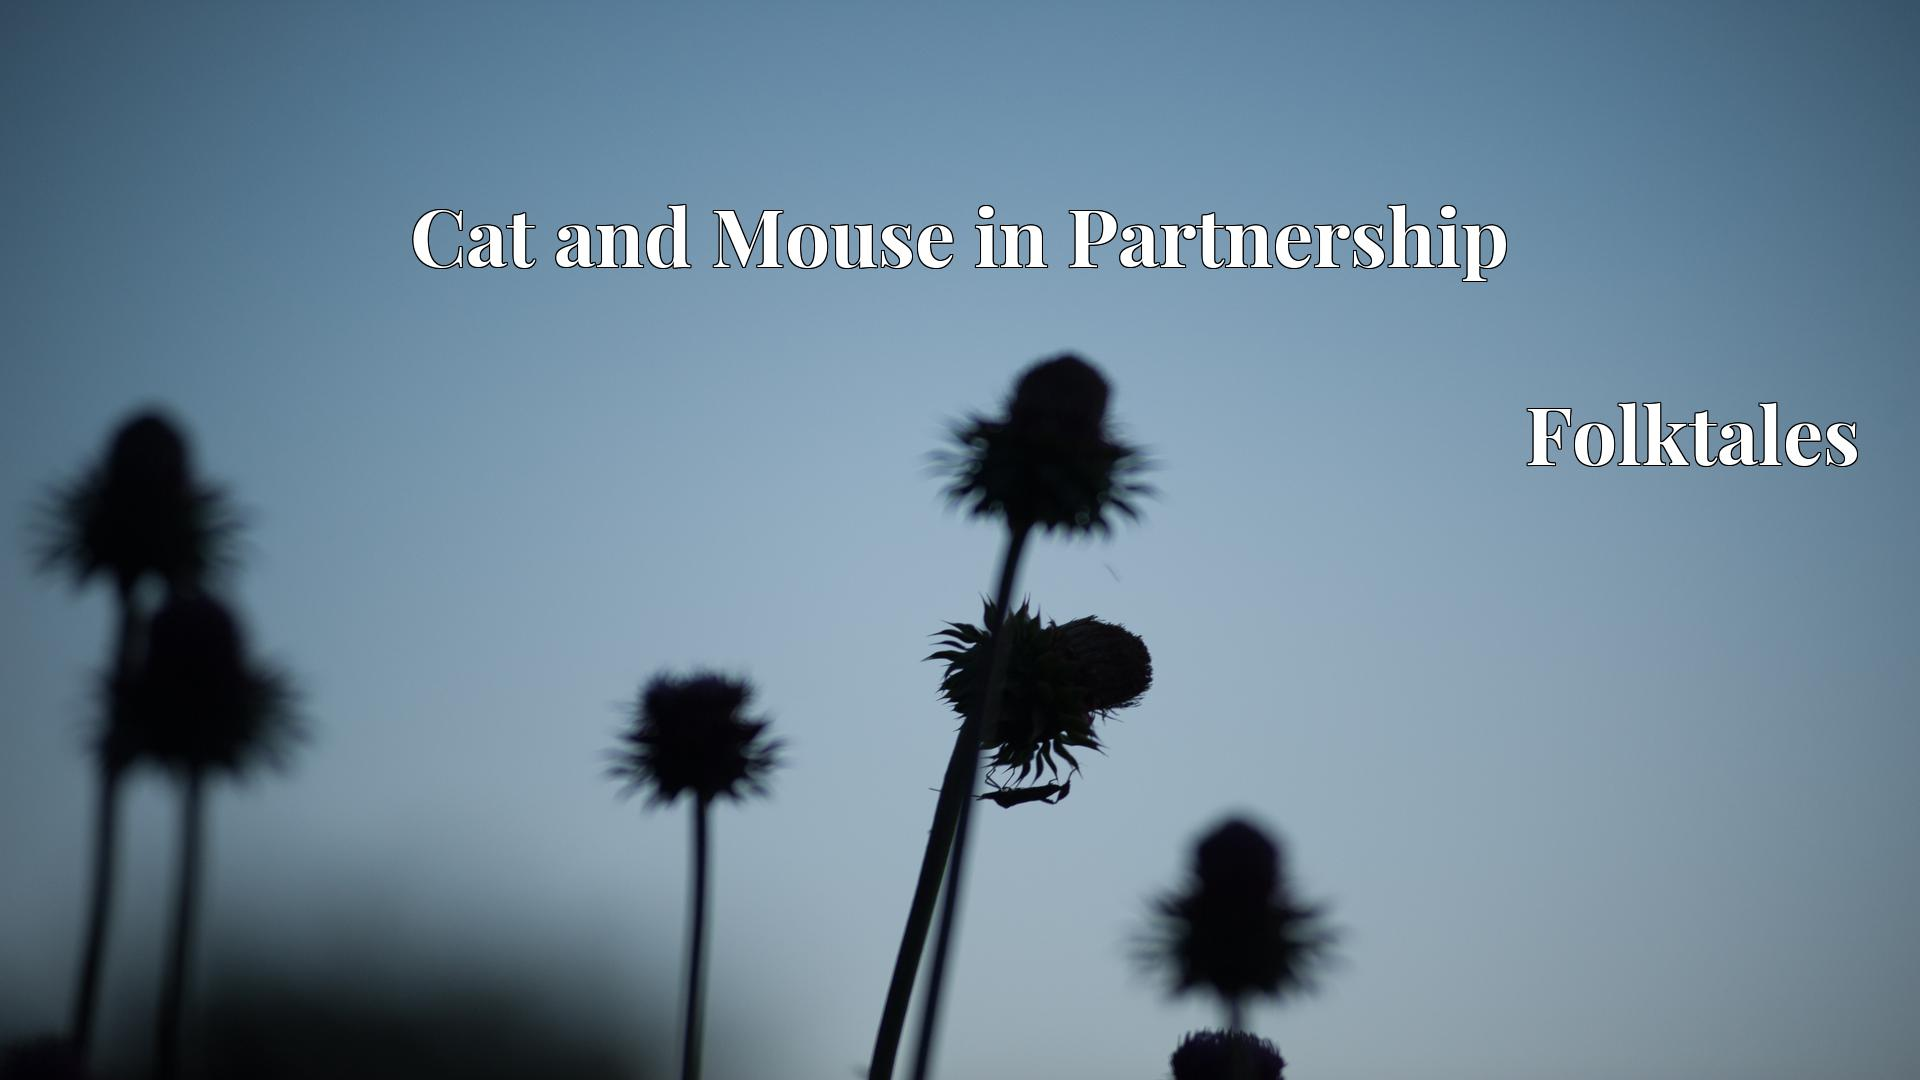 Cat and Mouse in Partnership - Folktales